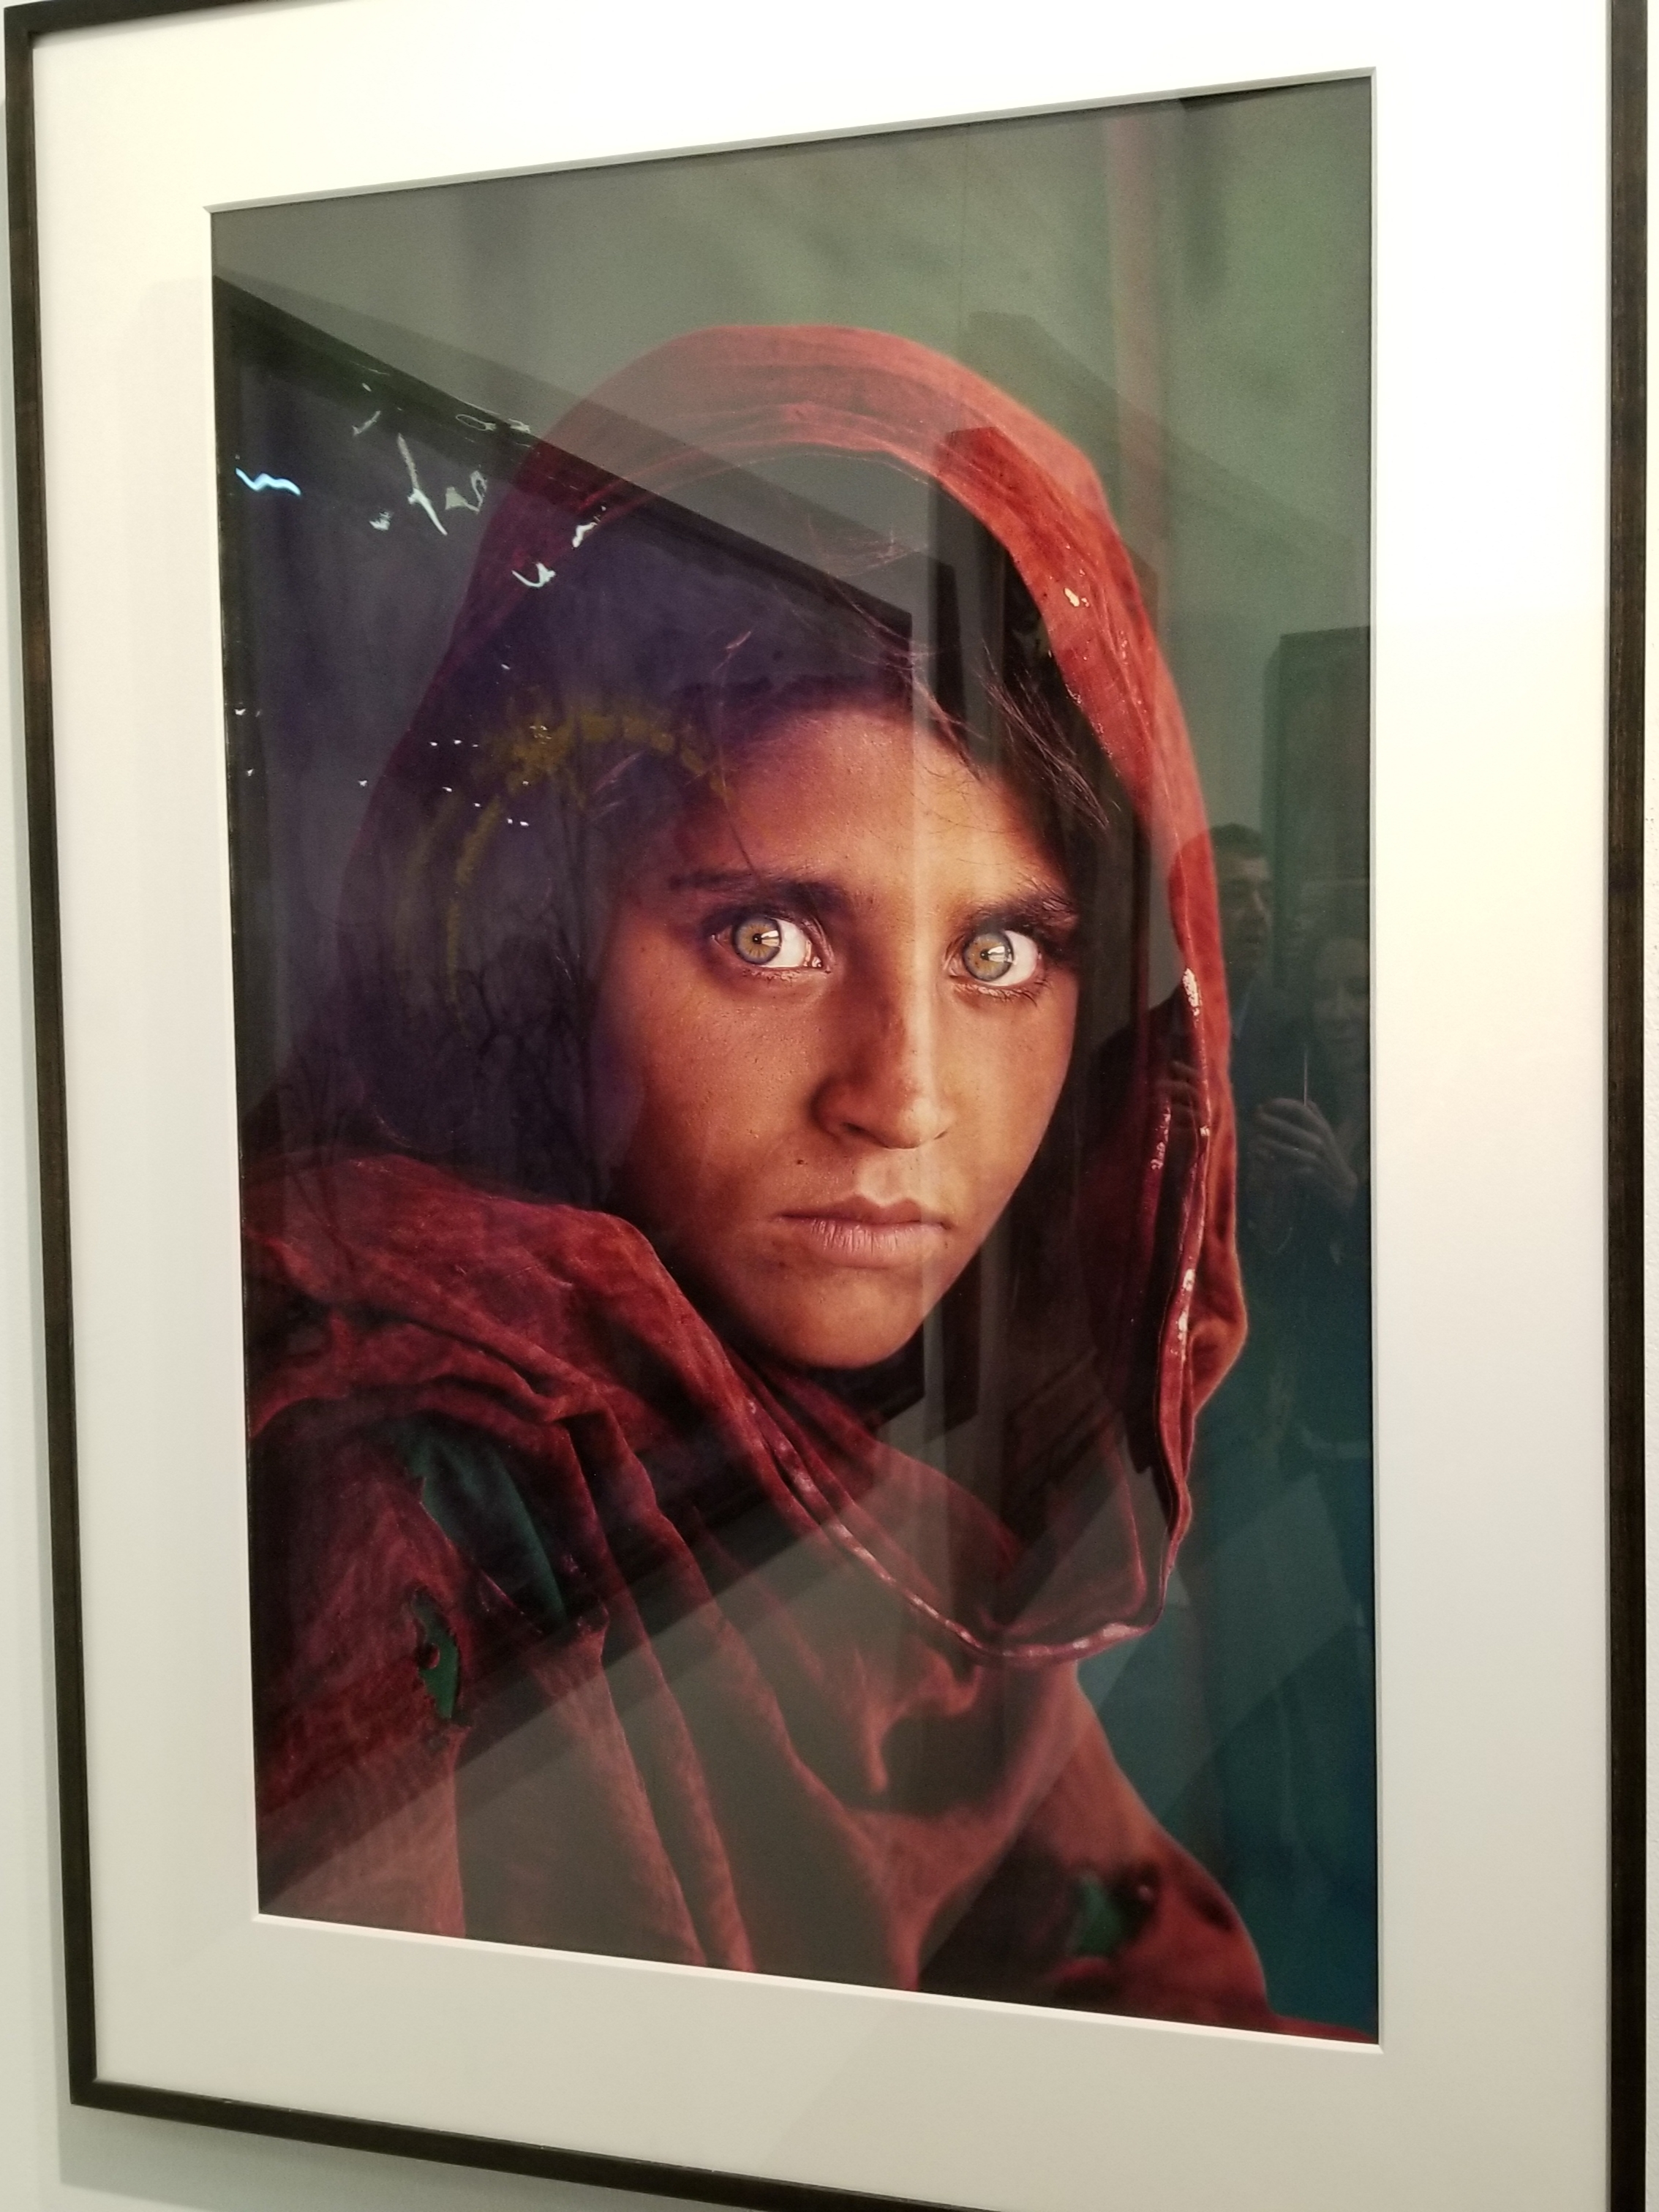 """Afghan Girl"" photographed by Steve McCurry on display at Art New York"